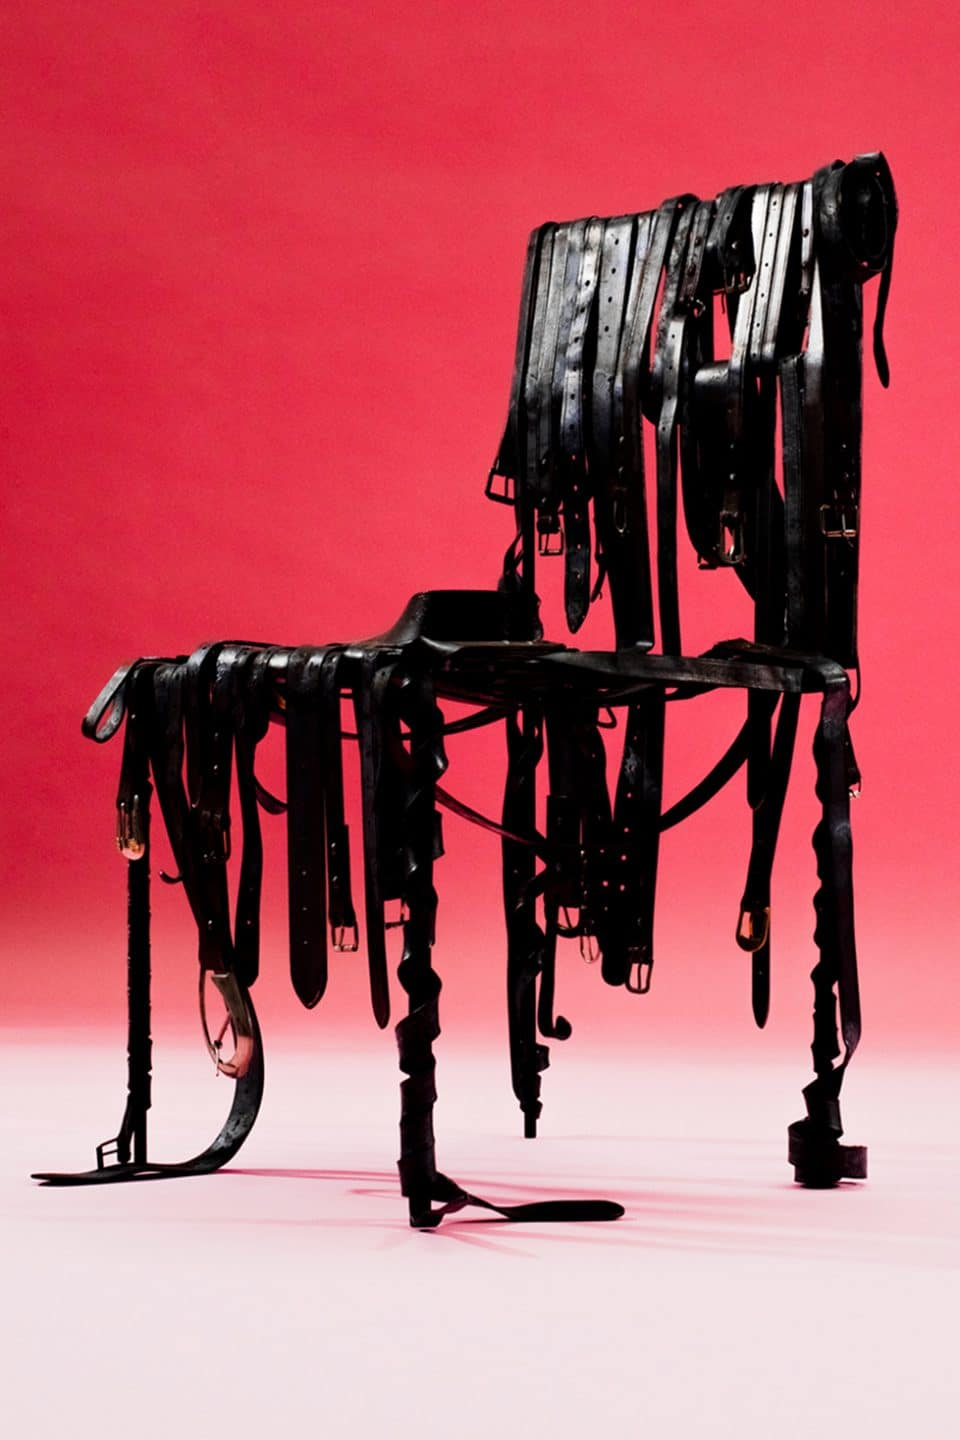 These Surreal Chairs at R & Company Are Unmistakably Works of Art